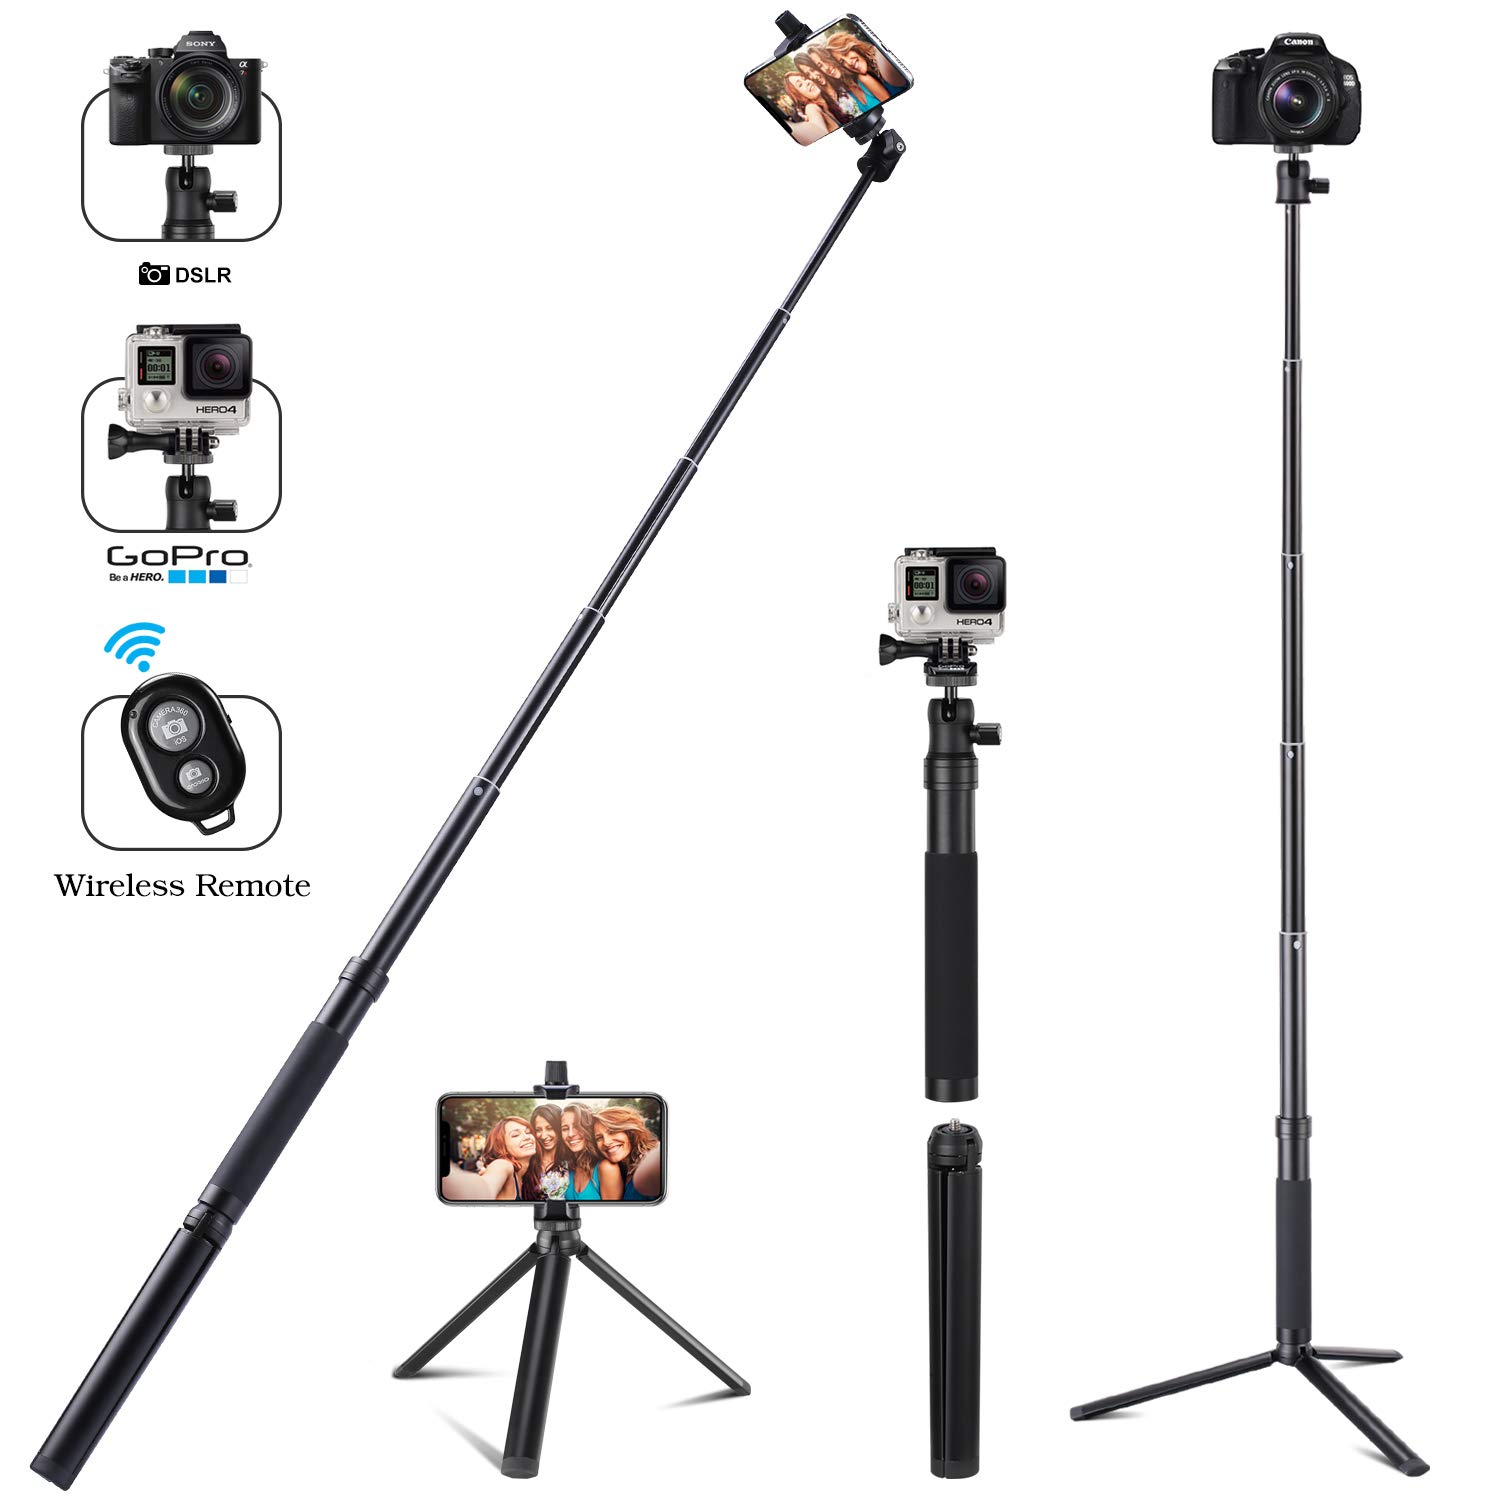 Eocean 46in Selfie Stick Tripod for Cellphone with iOS and Android System(iPhone/Samsung/Google/Huawei), iPhone Selfie Stick for GoPro Hero Fusion/6/5/4/3+/3/2/1, Ricoh Theta S/V, M15, Compact Cameras